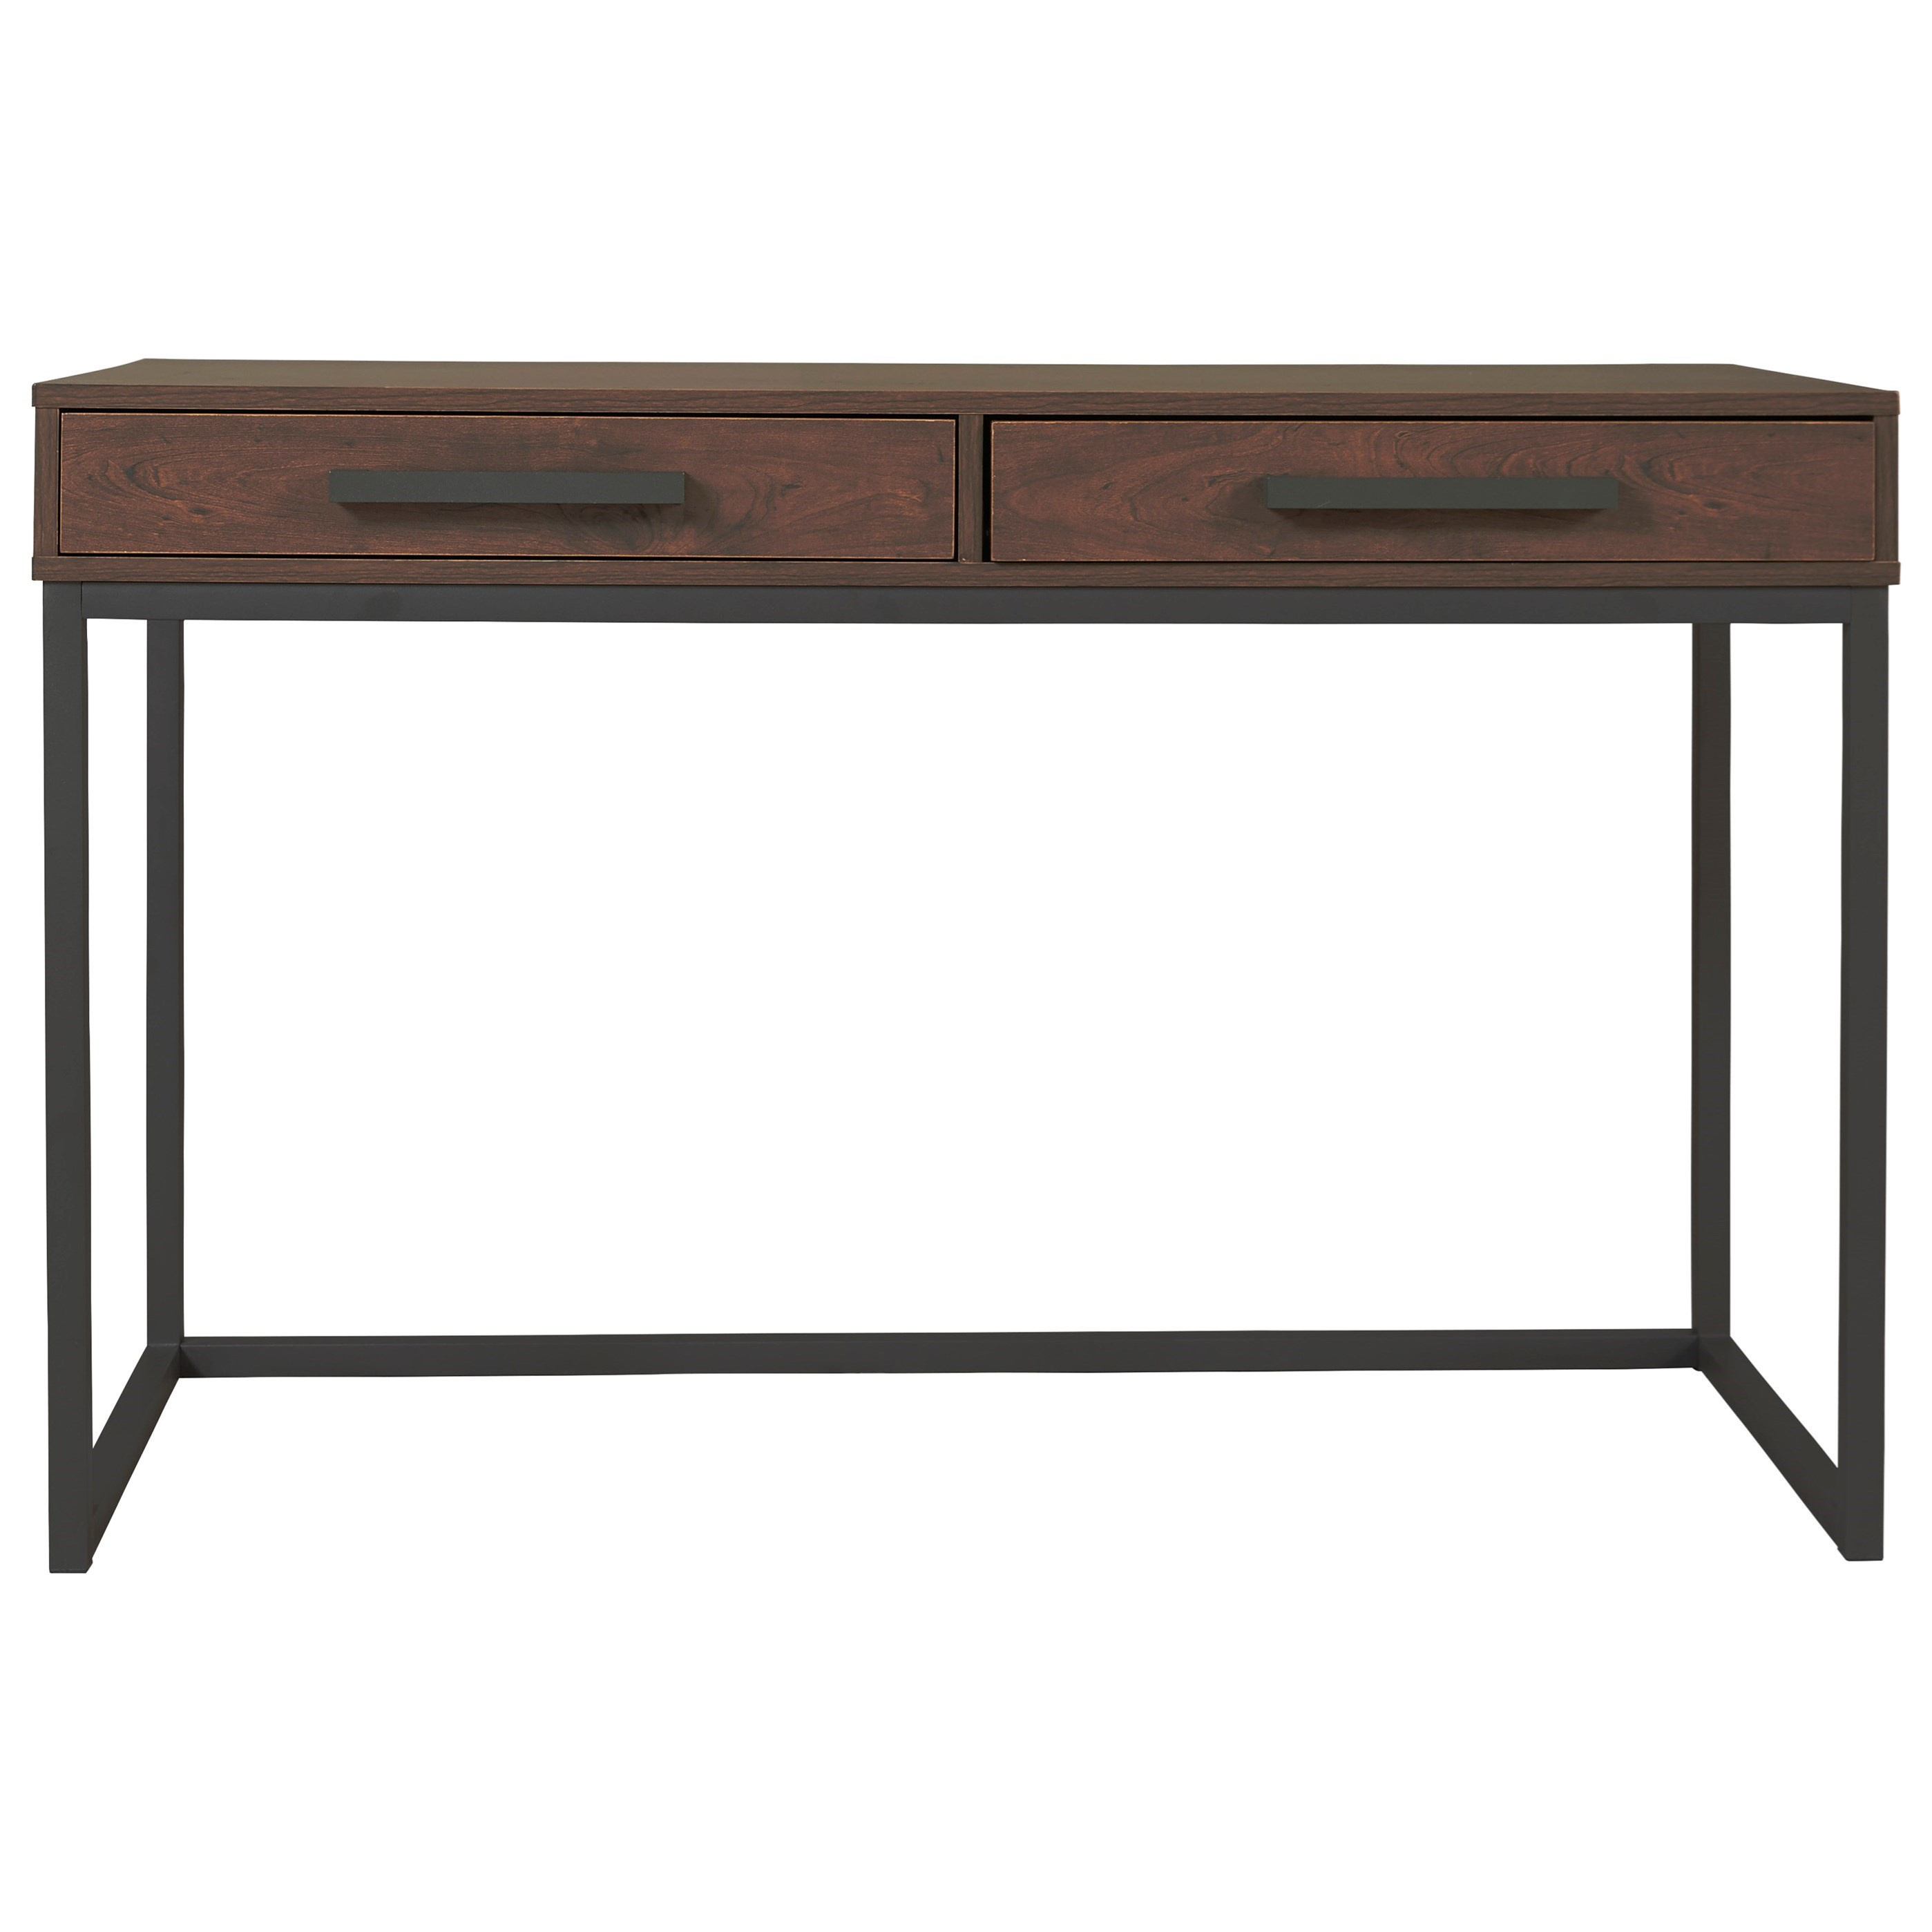 Horatio Home Office Small Desk by Signature Design by Ashley at Suburban Furniture